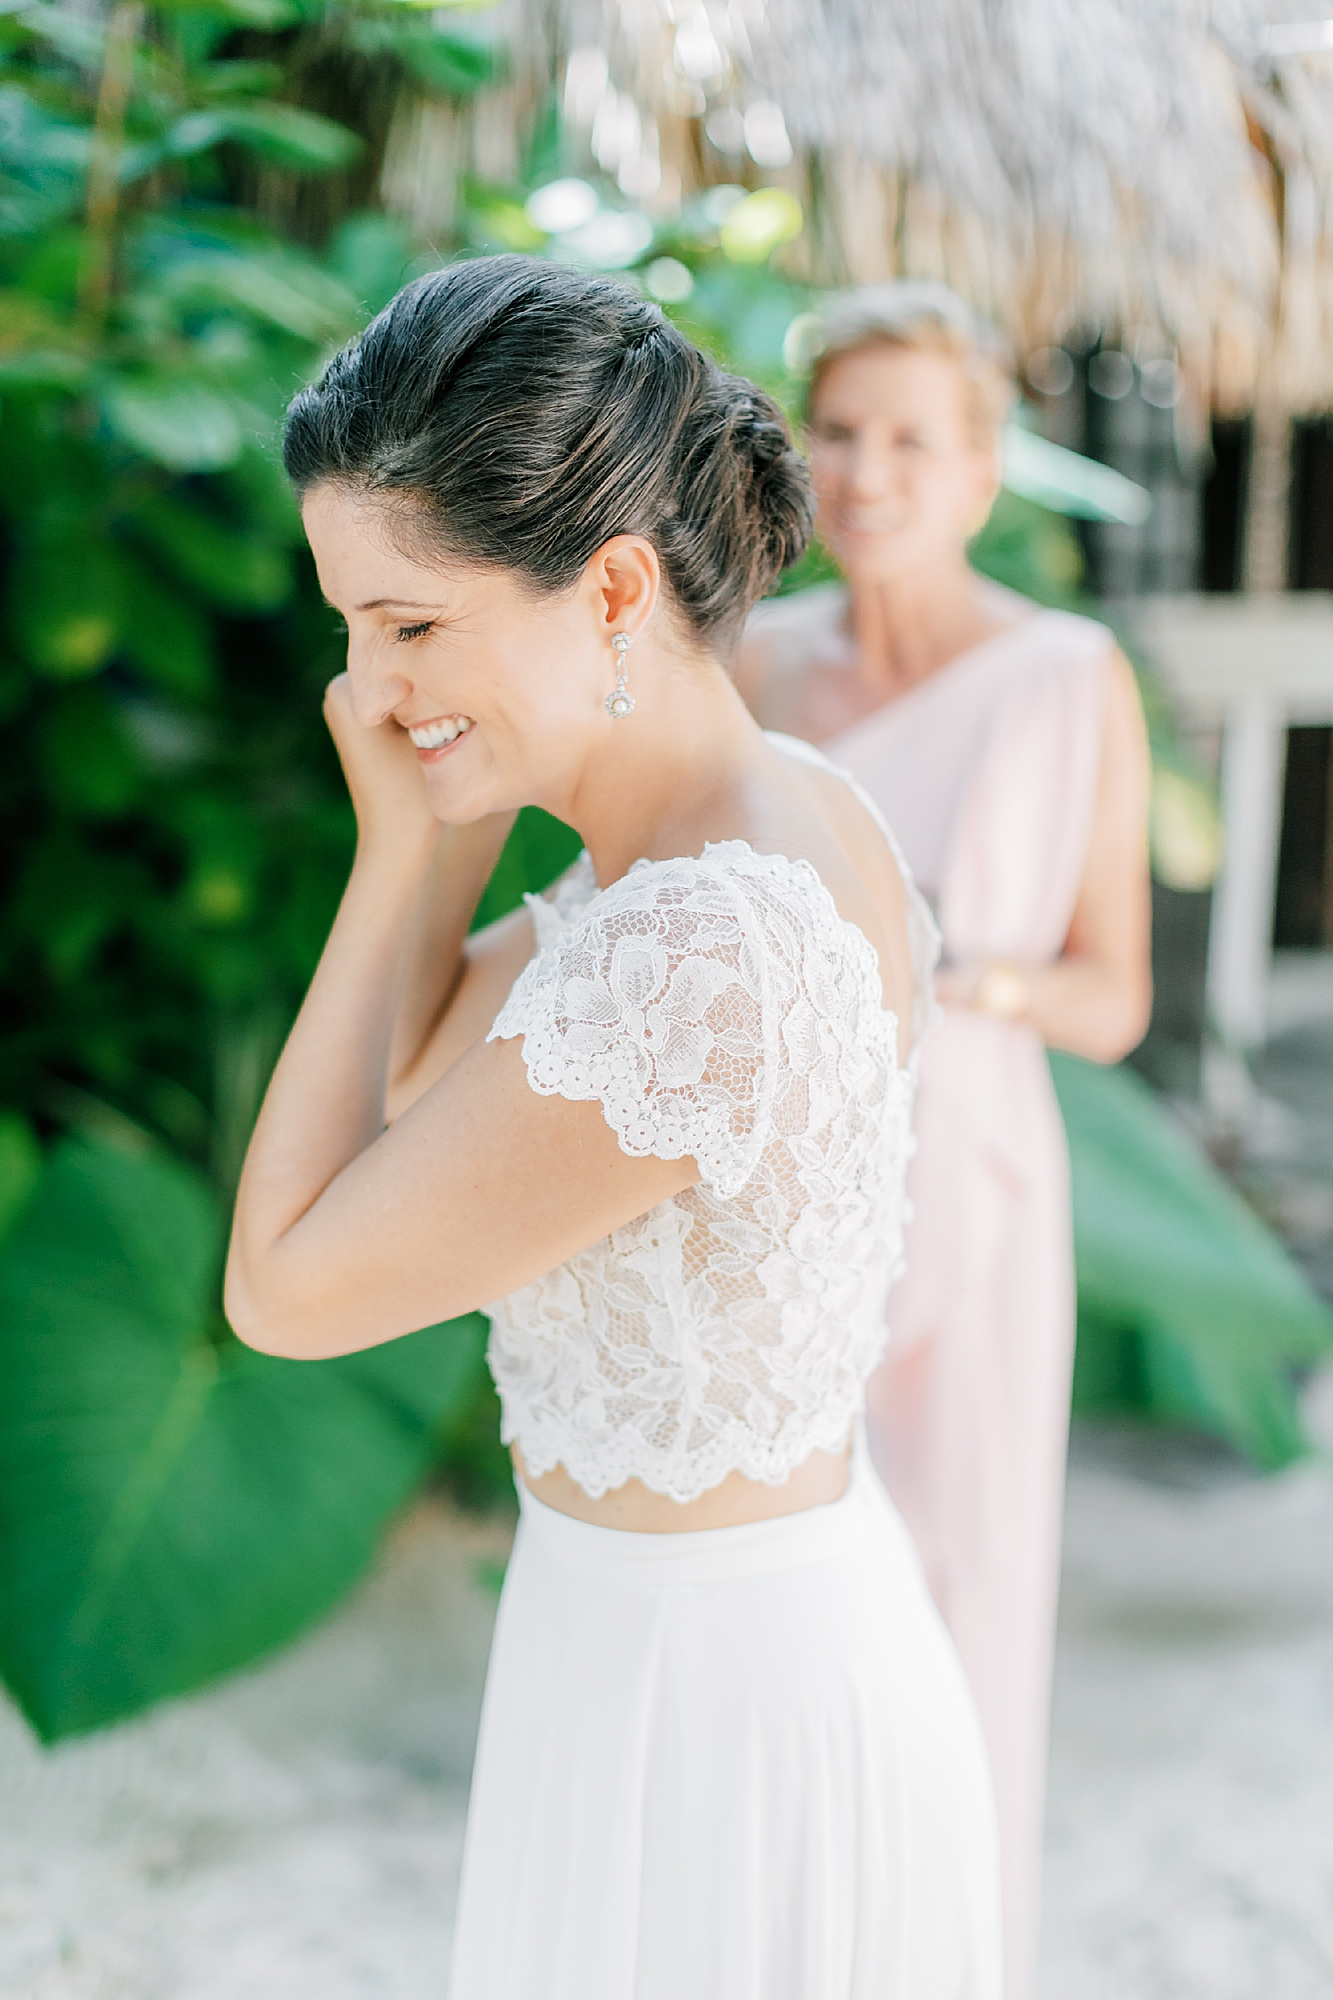 Stylish and Candid Destination Film Wedding Photography in Tulum Mexico by Magdalena Studios 0007